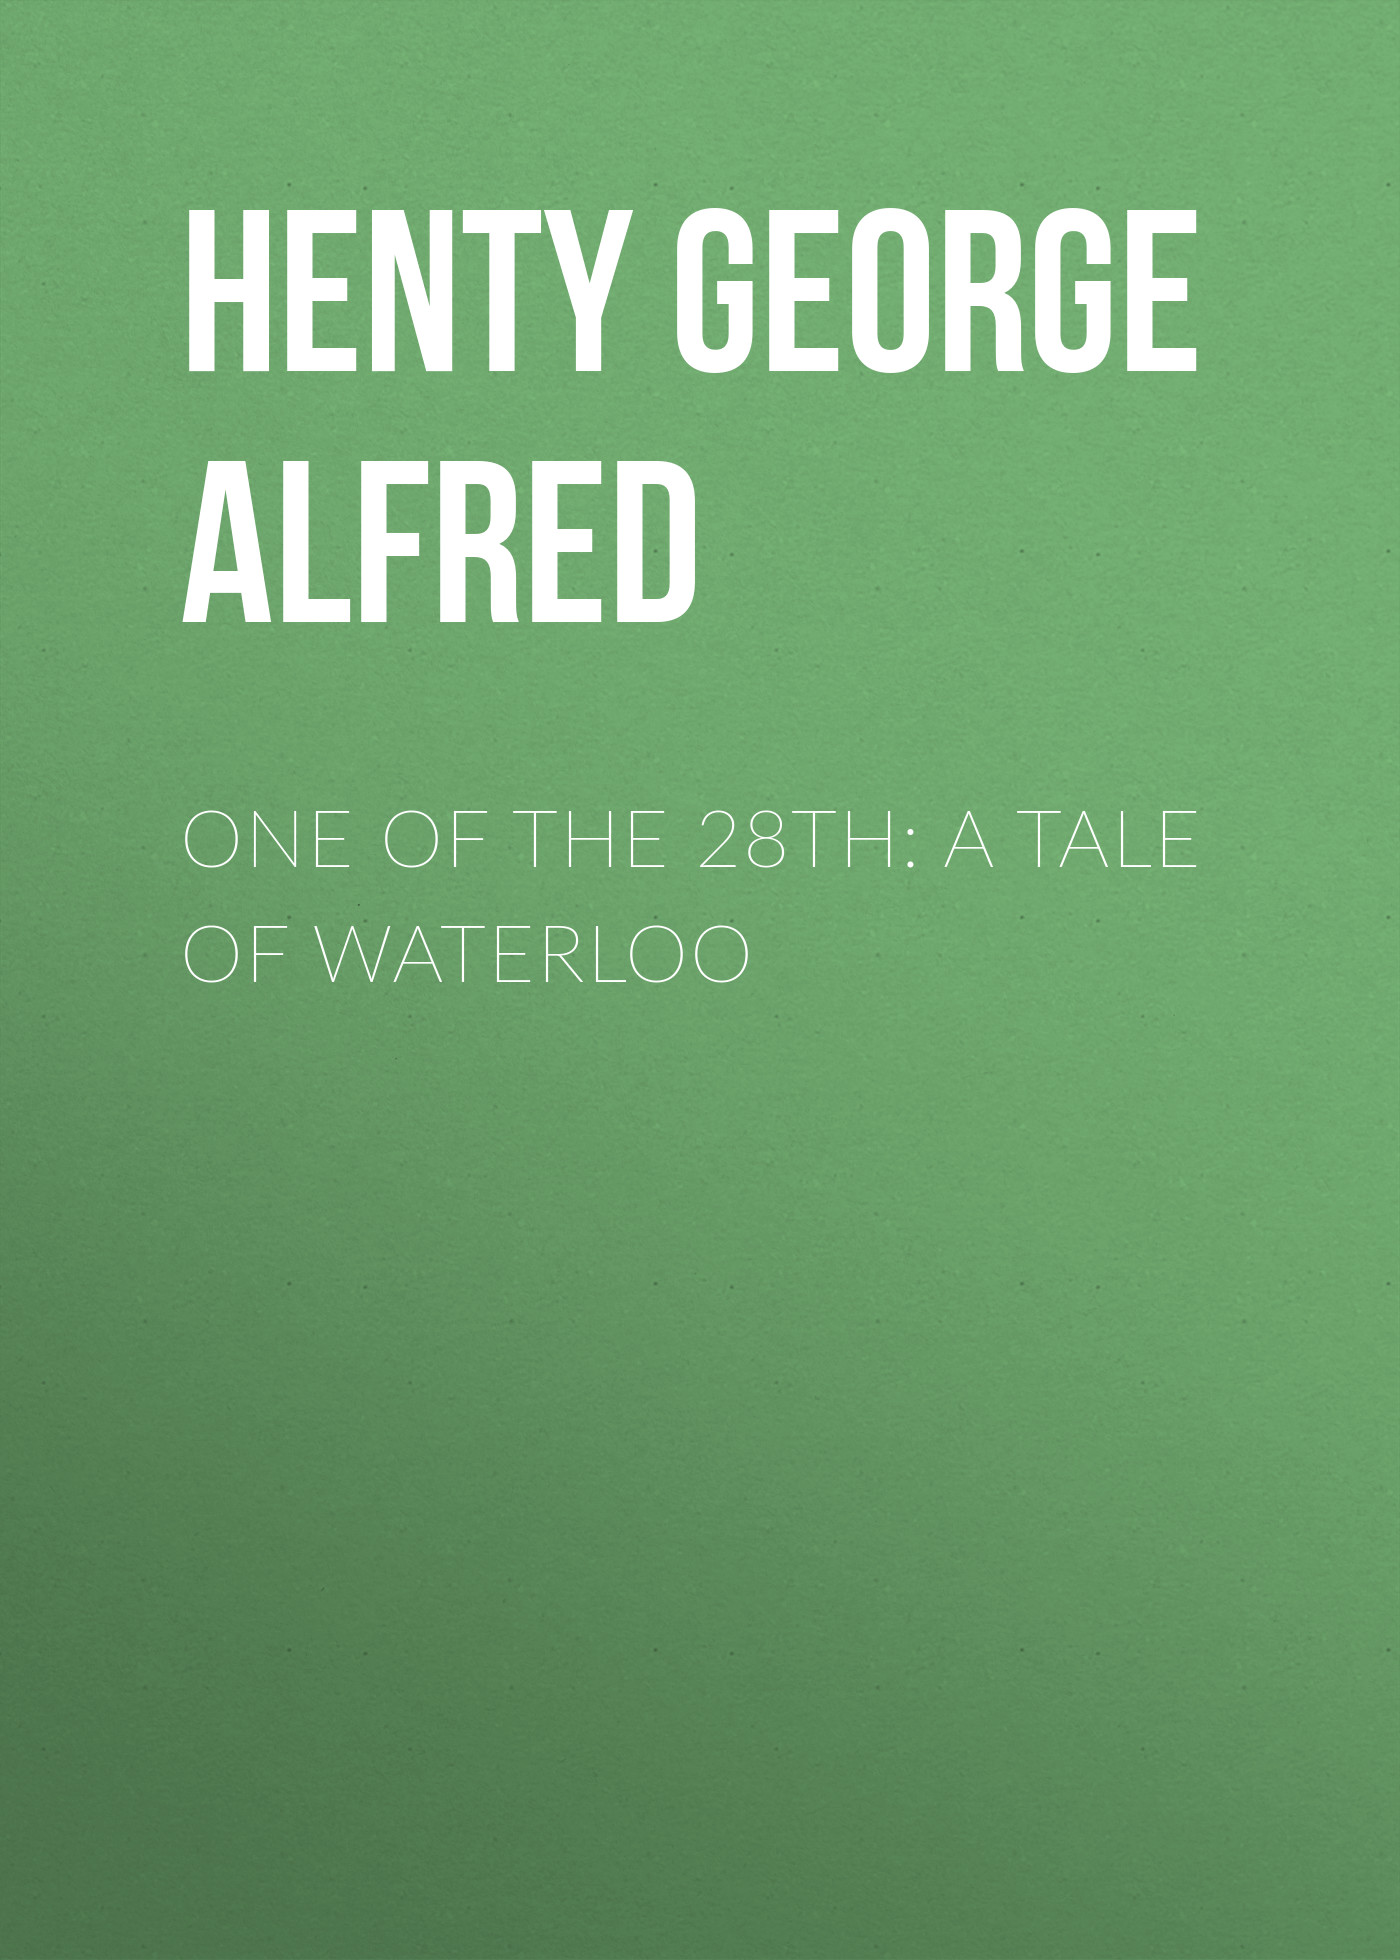 Henty George Alfred One of the 28th: A Tale of Waterloo henty george alfred redskin and cow boy a tale of the western plains